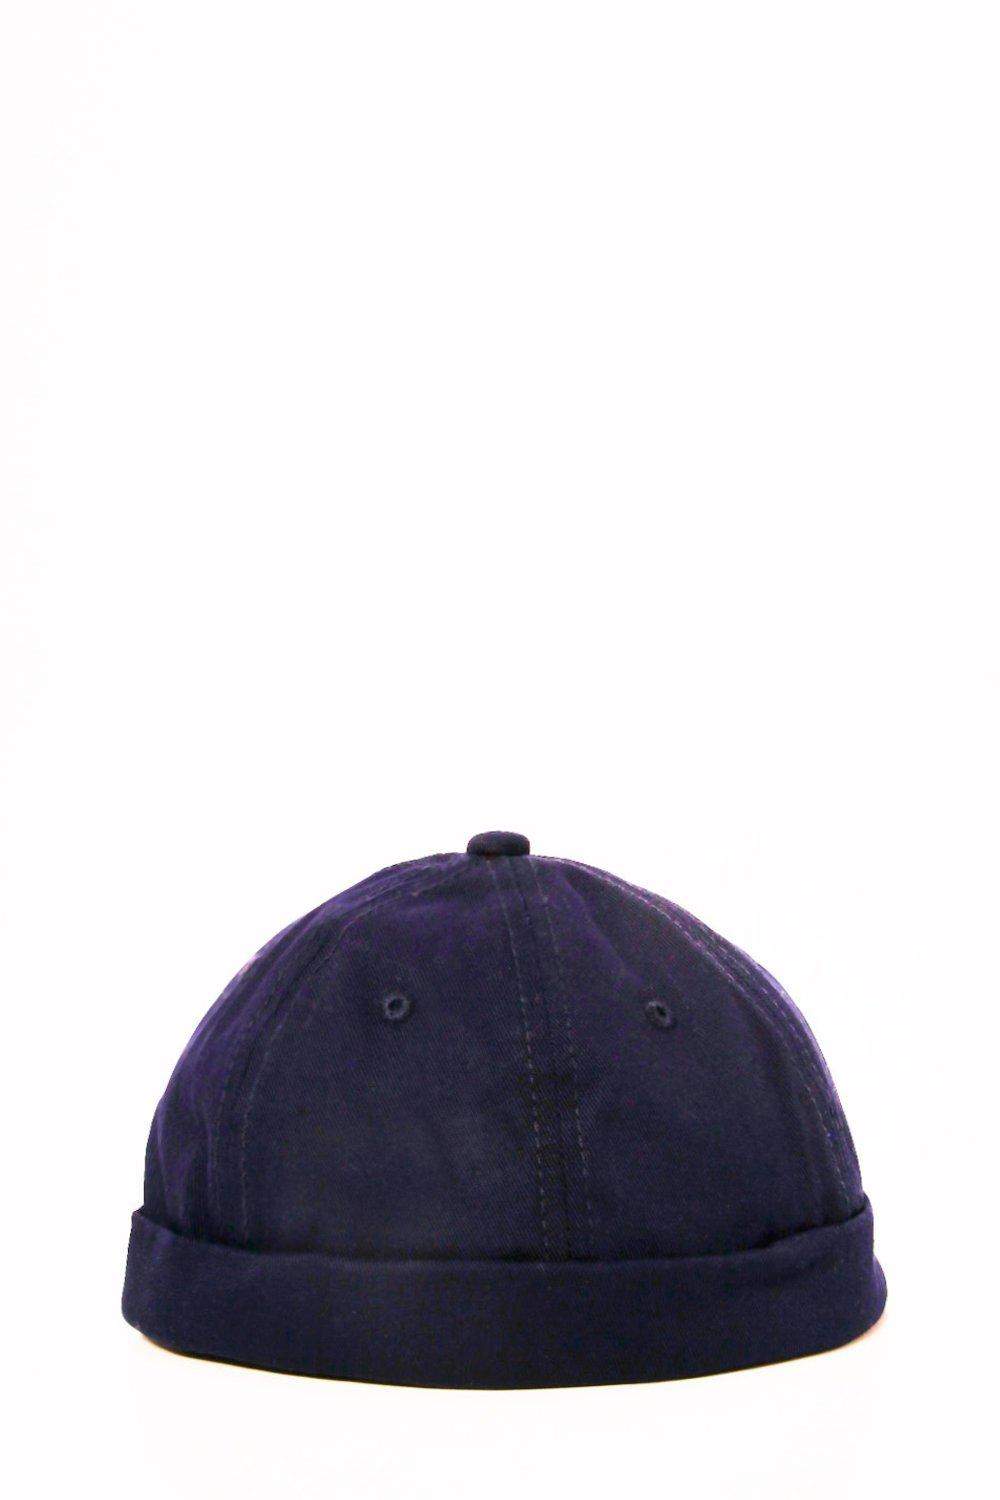 Panel Beanie - navy - Six Panel Beanie - navy